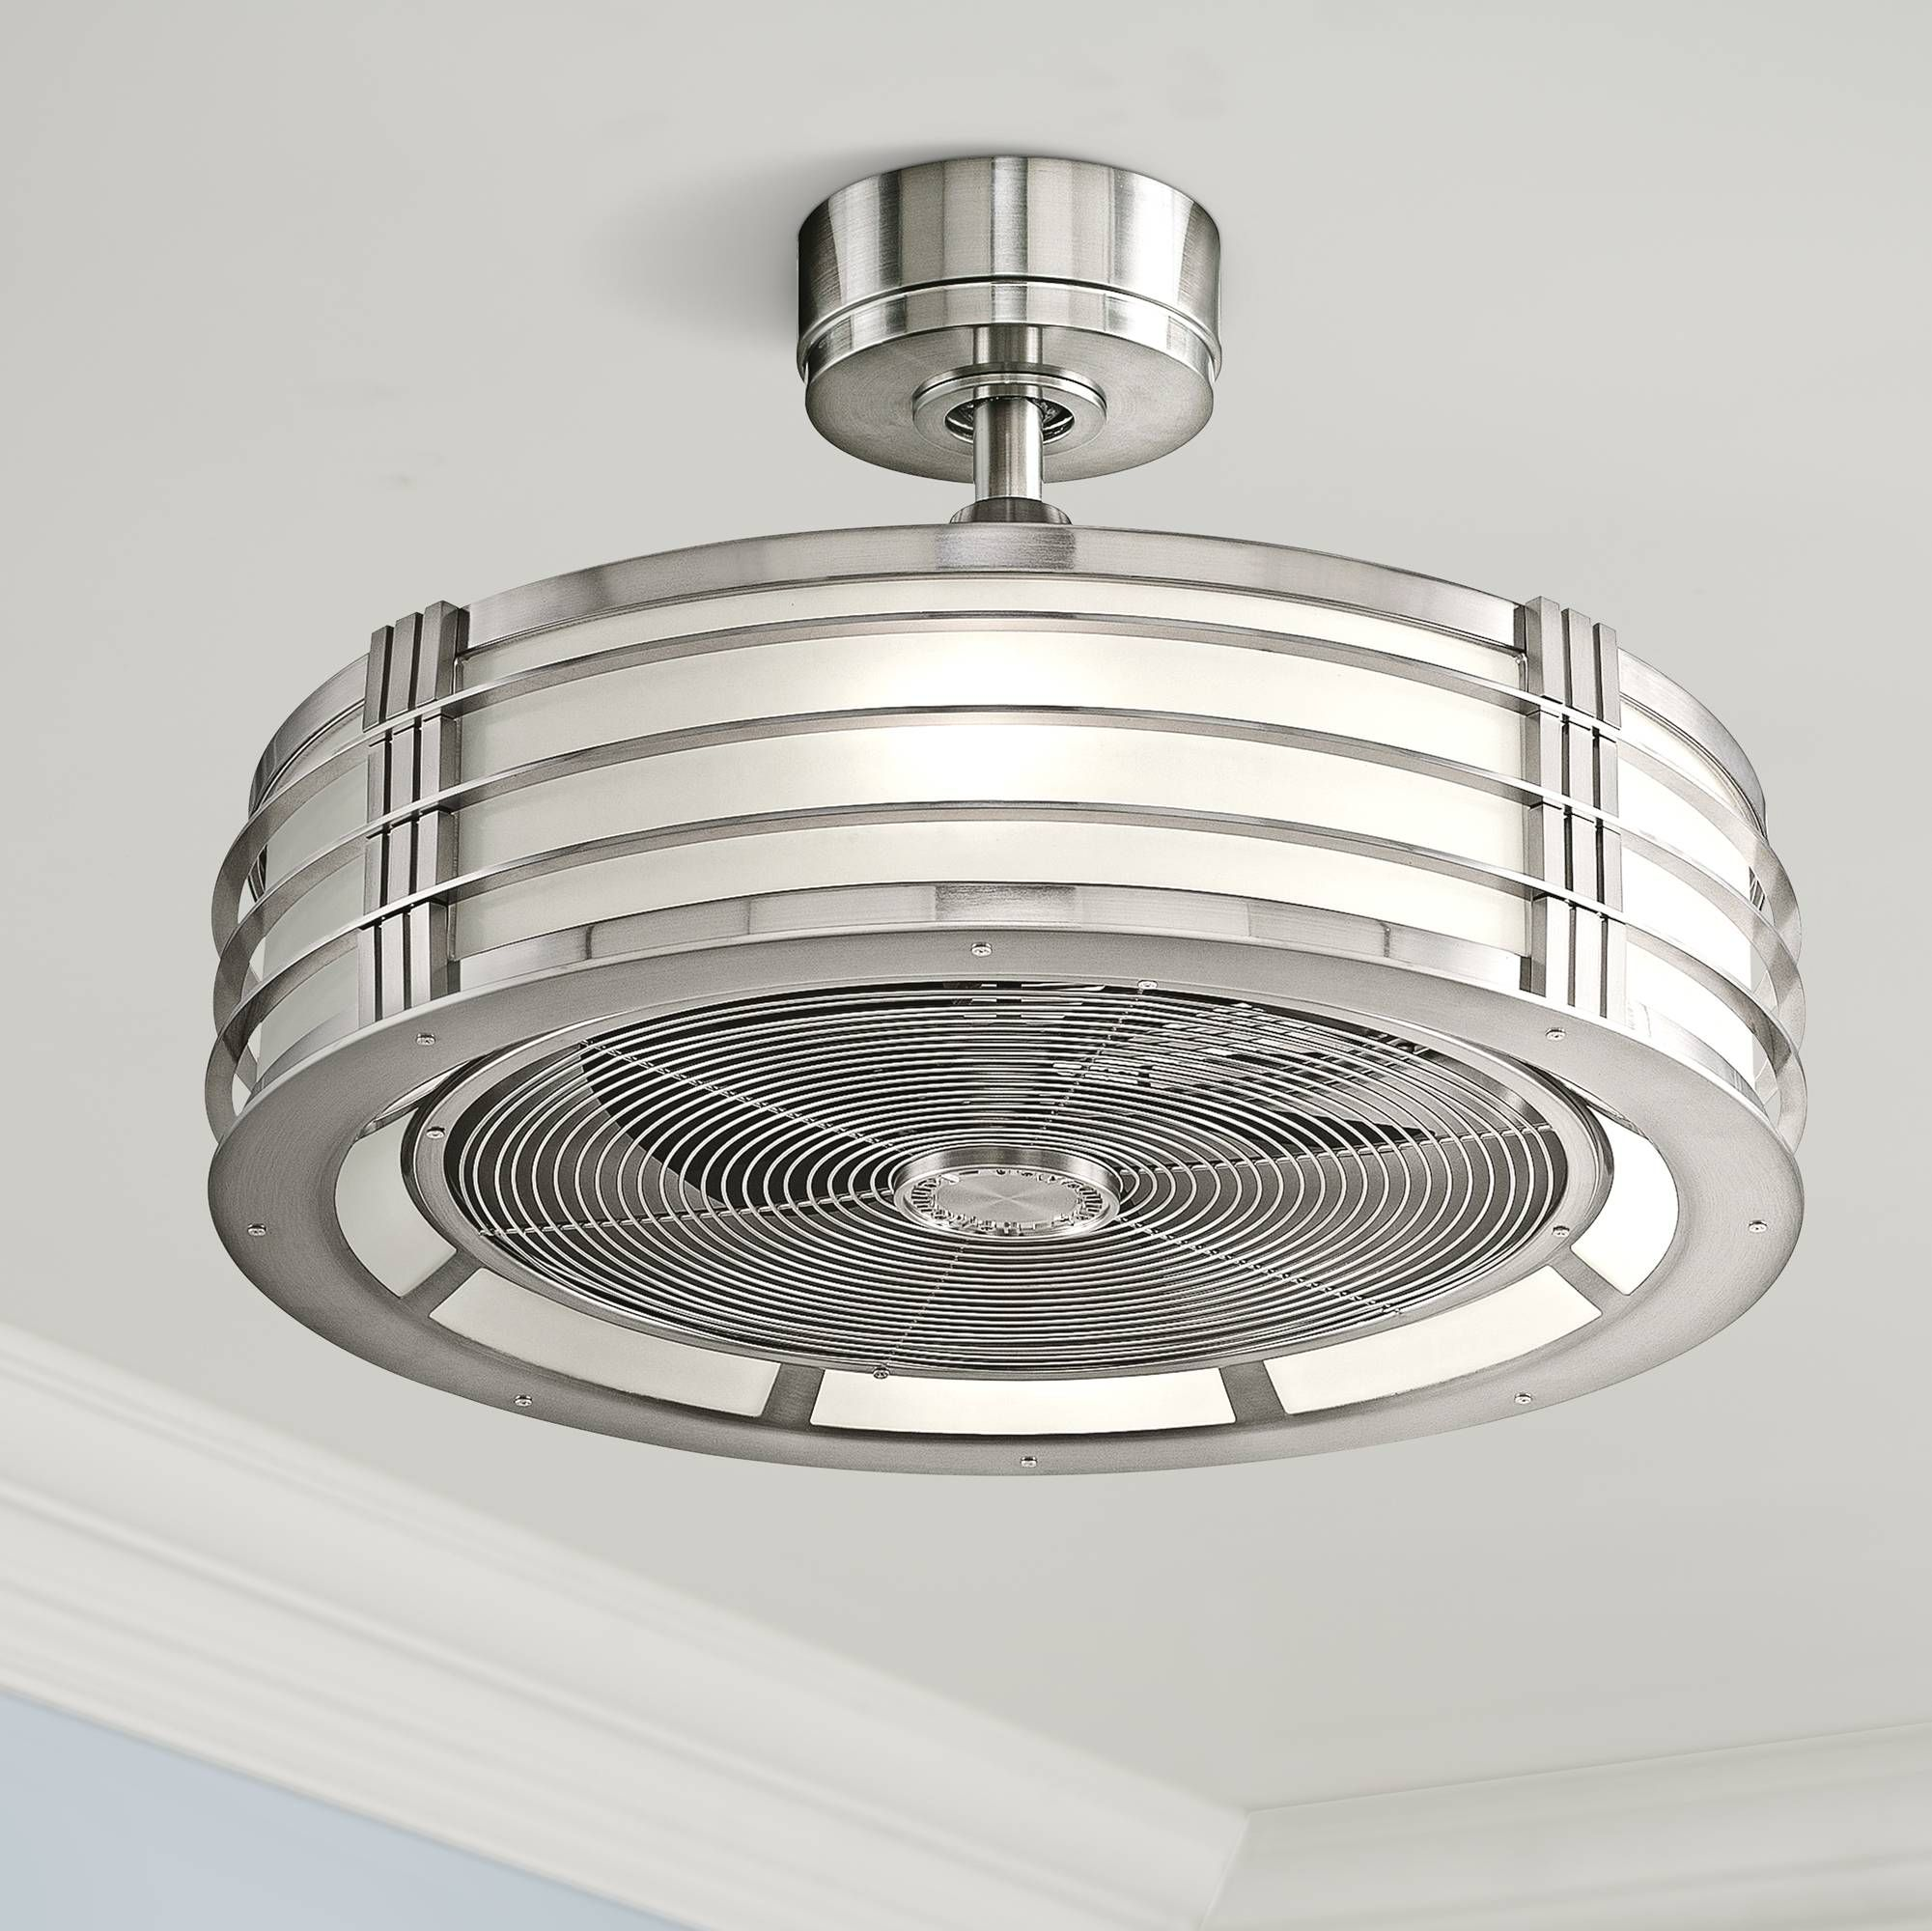 23 fanimation beckwith brushed nickel ceiling fan 5j386 lamps 23 fanimation beckwith brushed nickel ceiling fan 5j386 lamps plus aloadofball Image collections